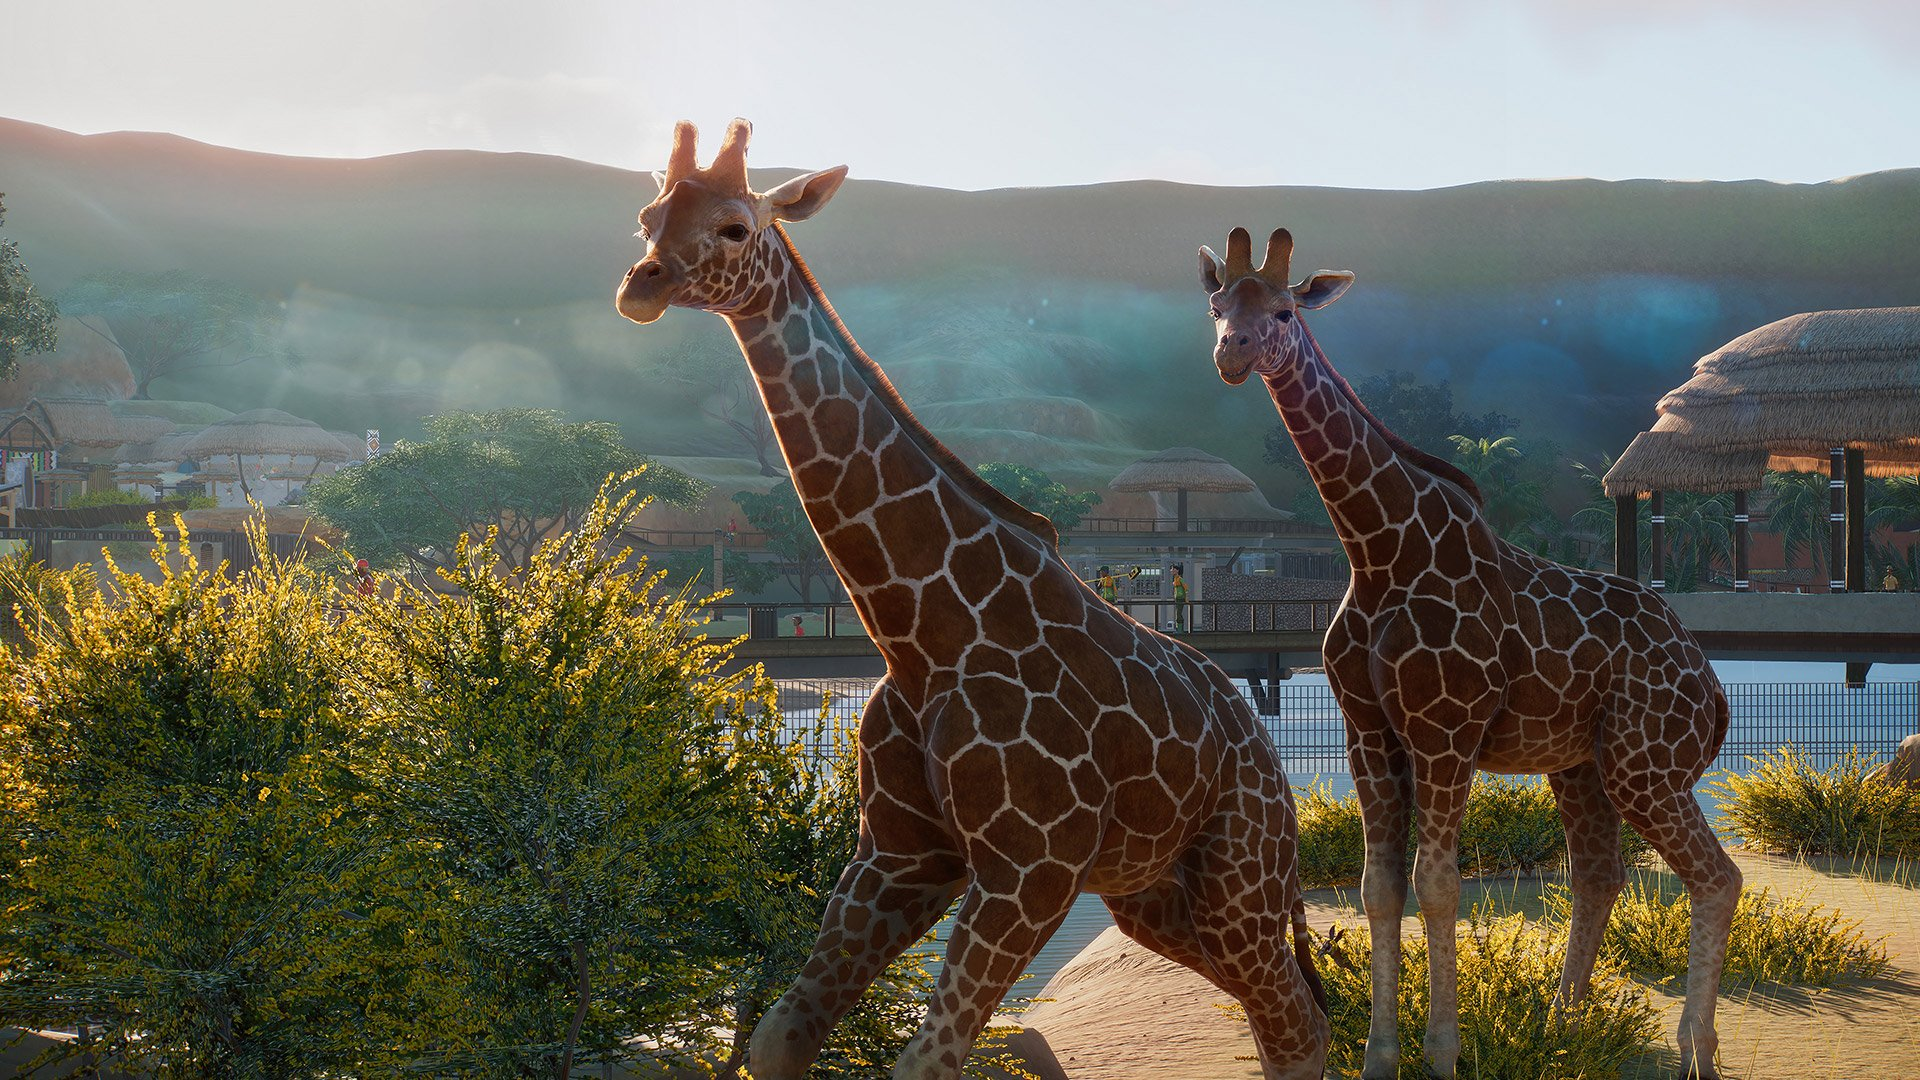 A reticulated giraffe in Planet Zoo